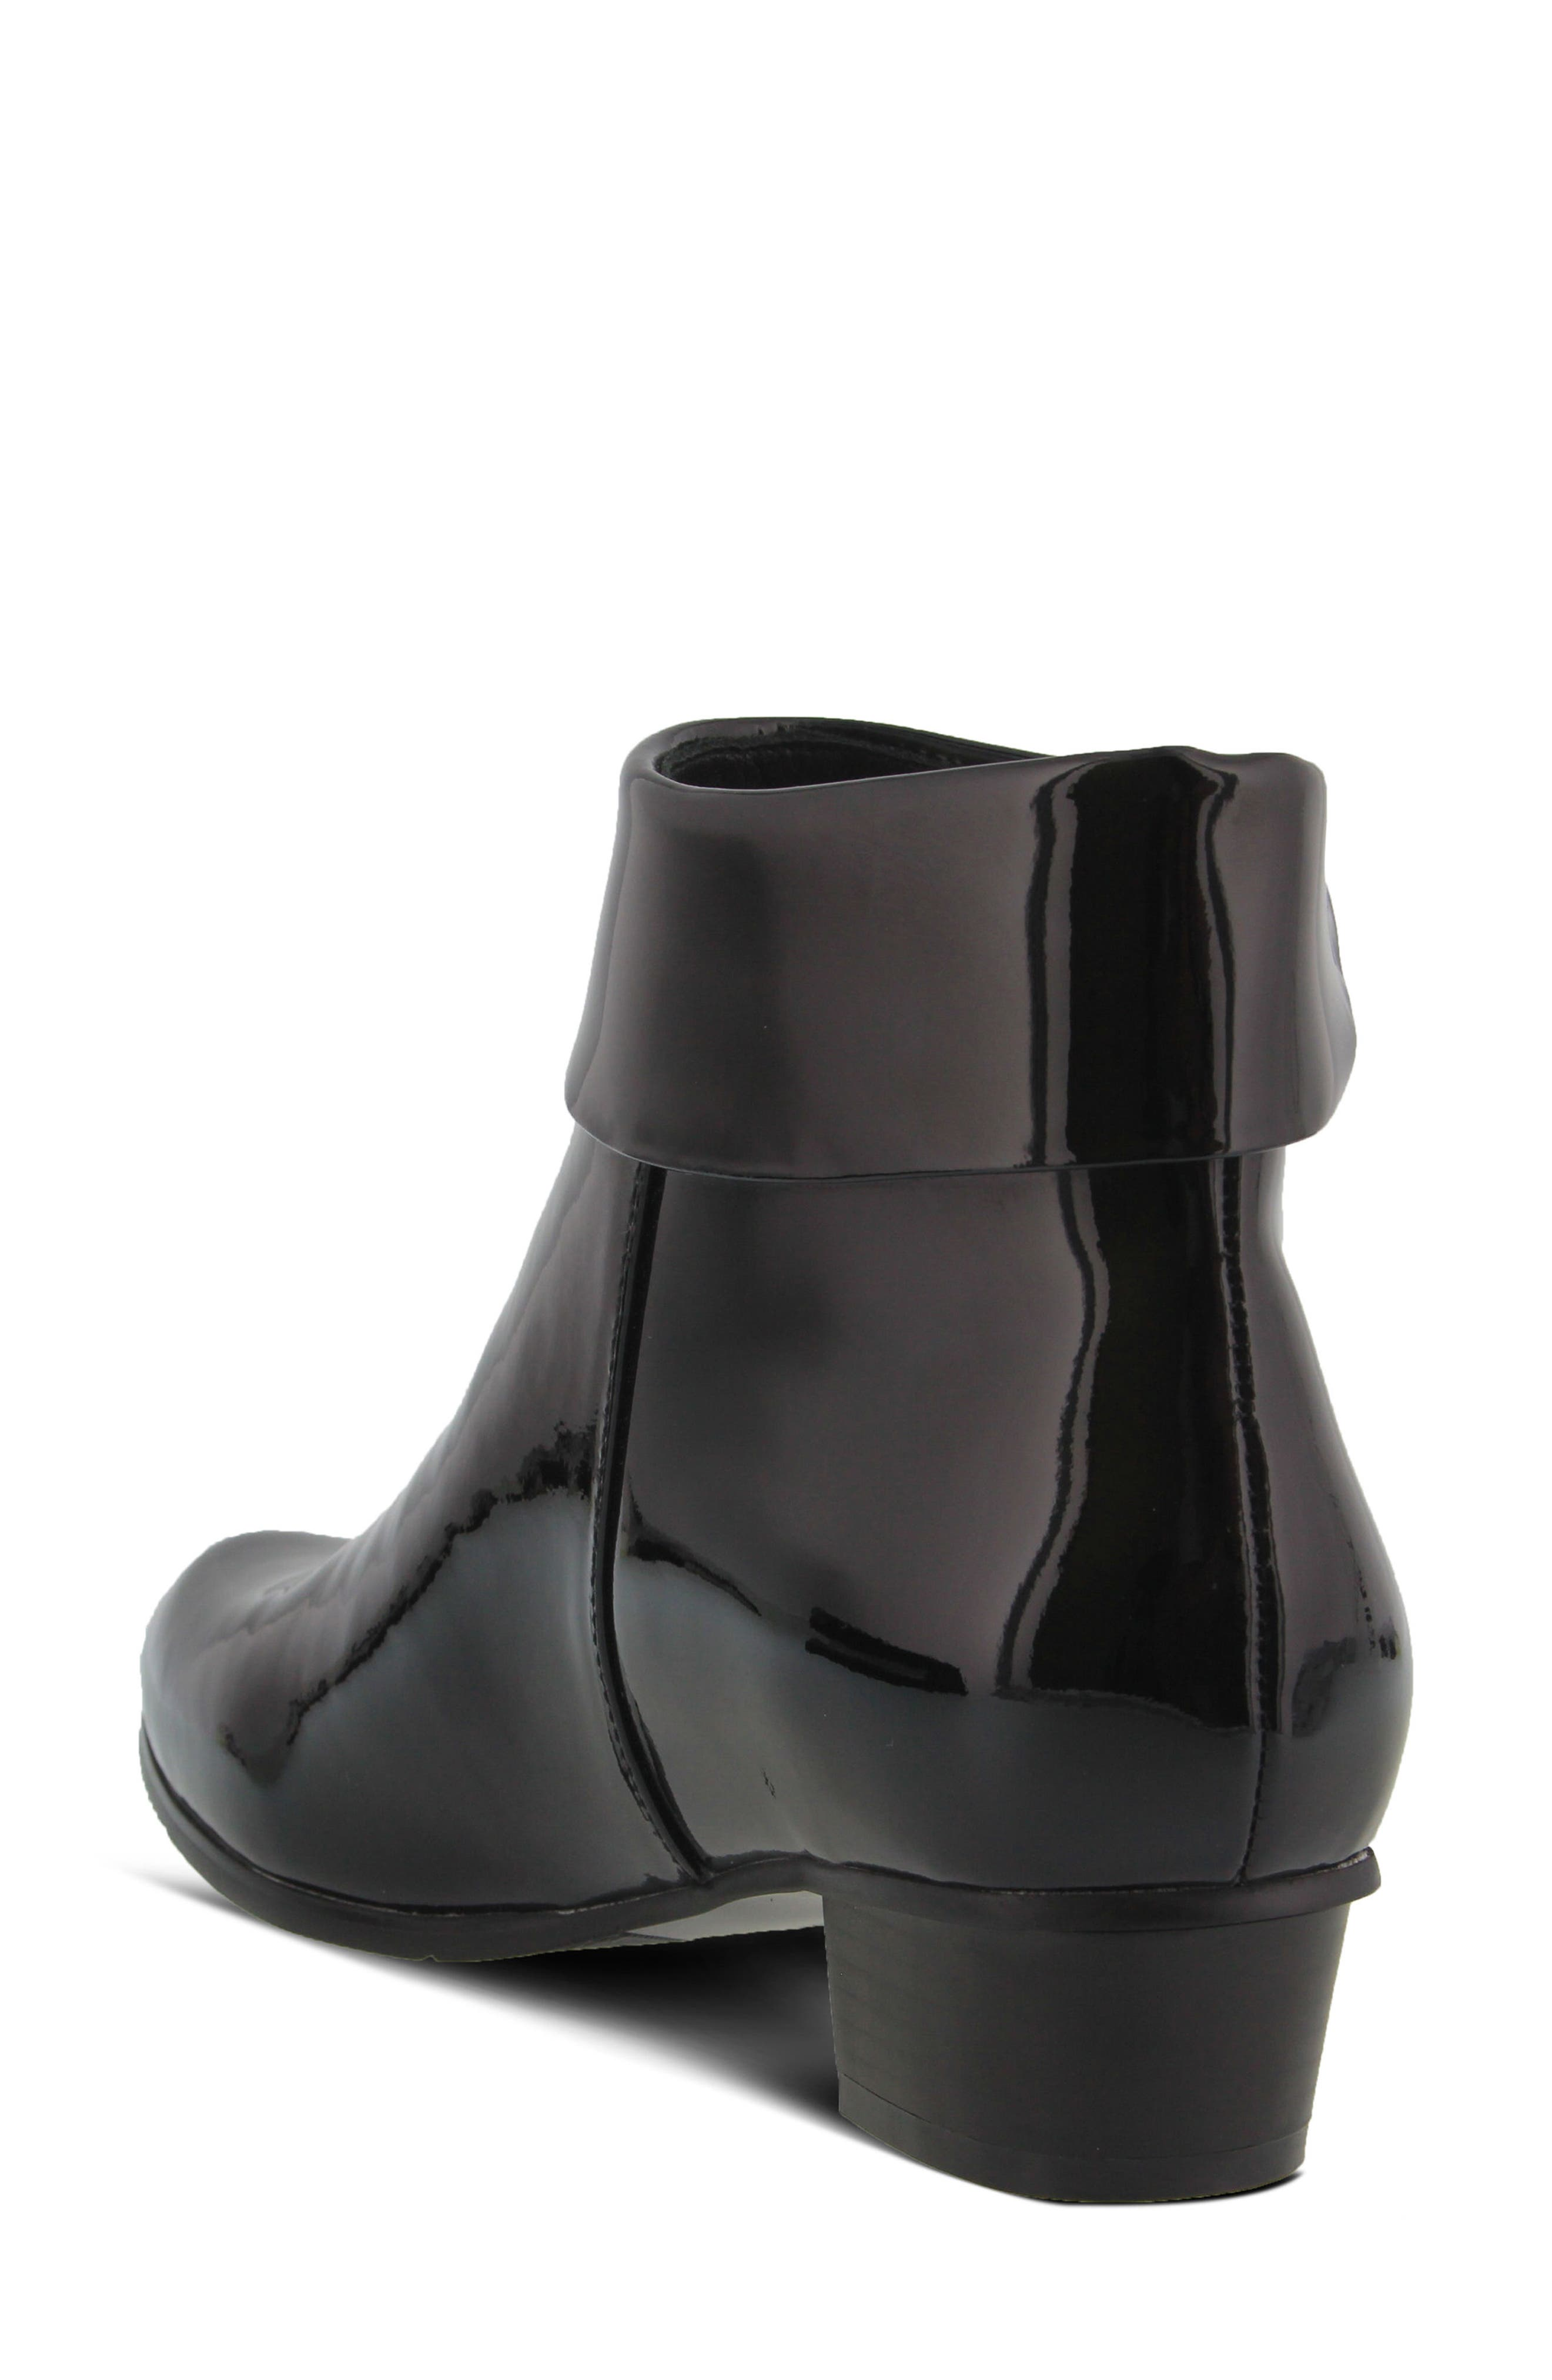 'Stockholm' Boot,                             Alternate thumbnail 2, color,                             Black Patent Leather